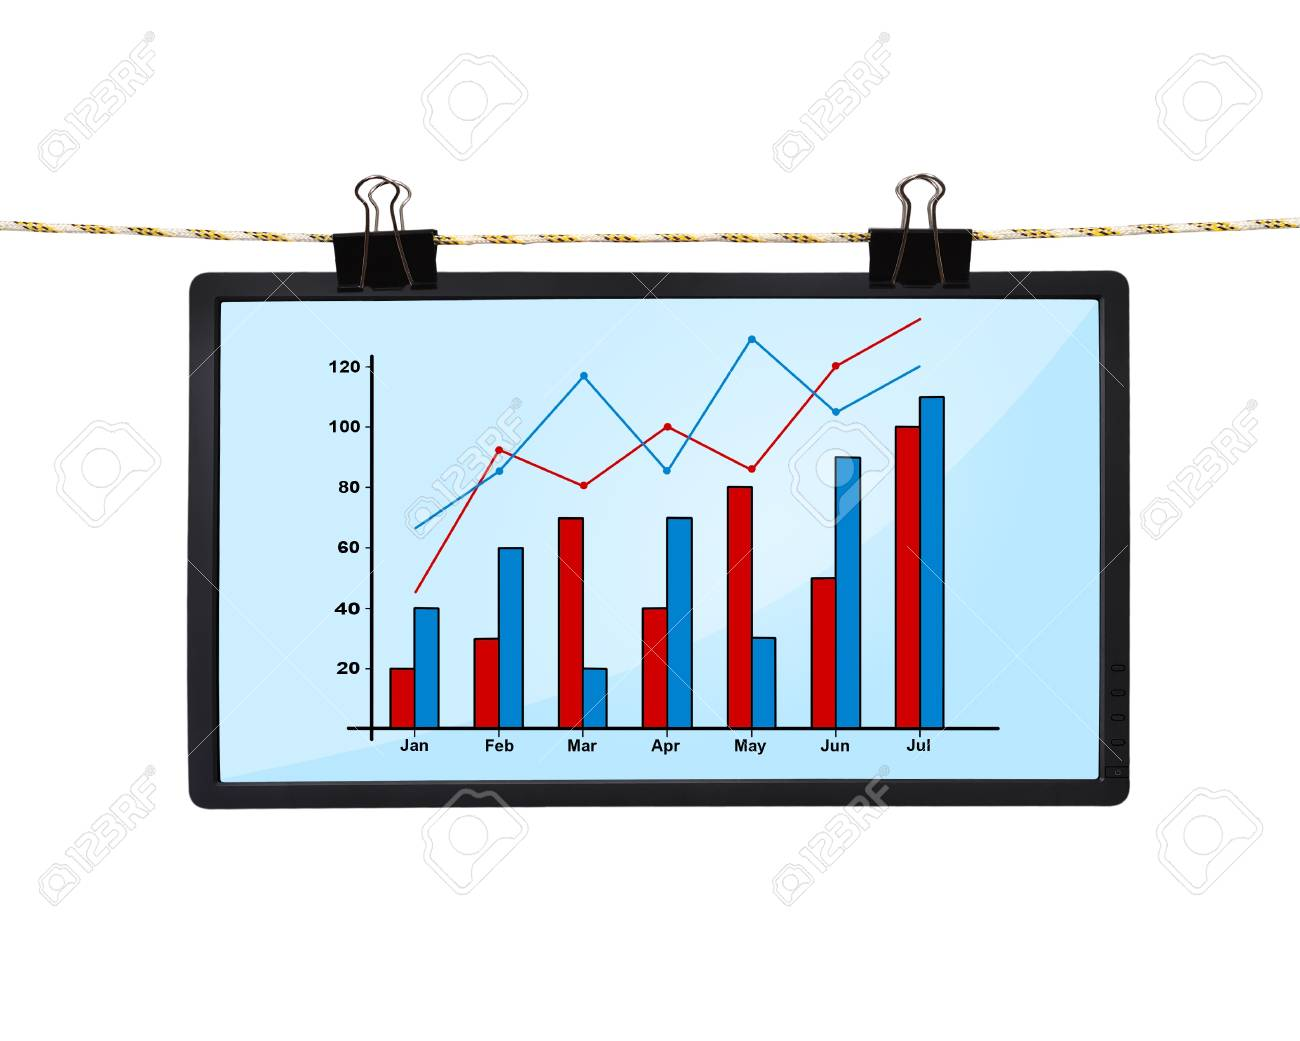 lcd screen with chart hanging on a rope stock photo - 19331716